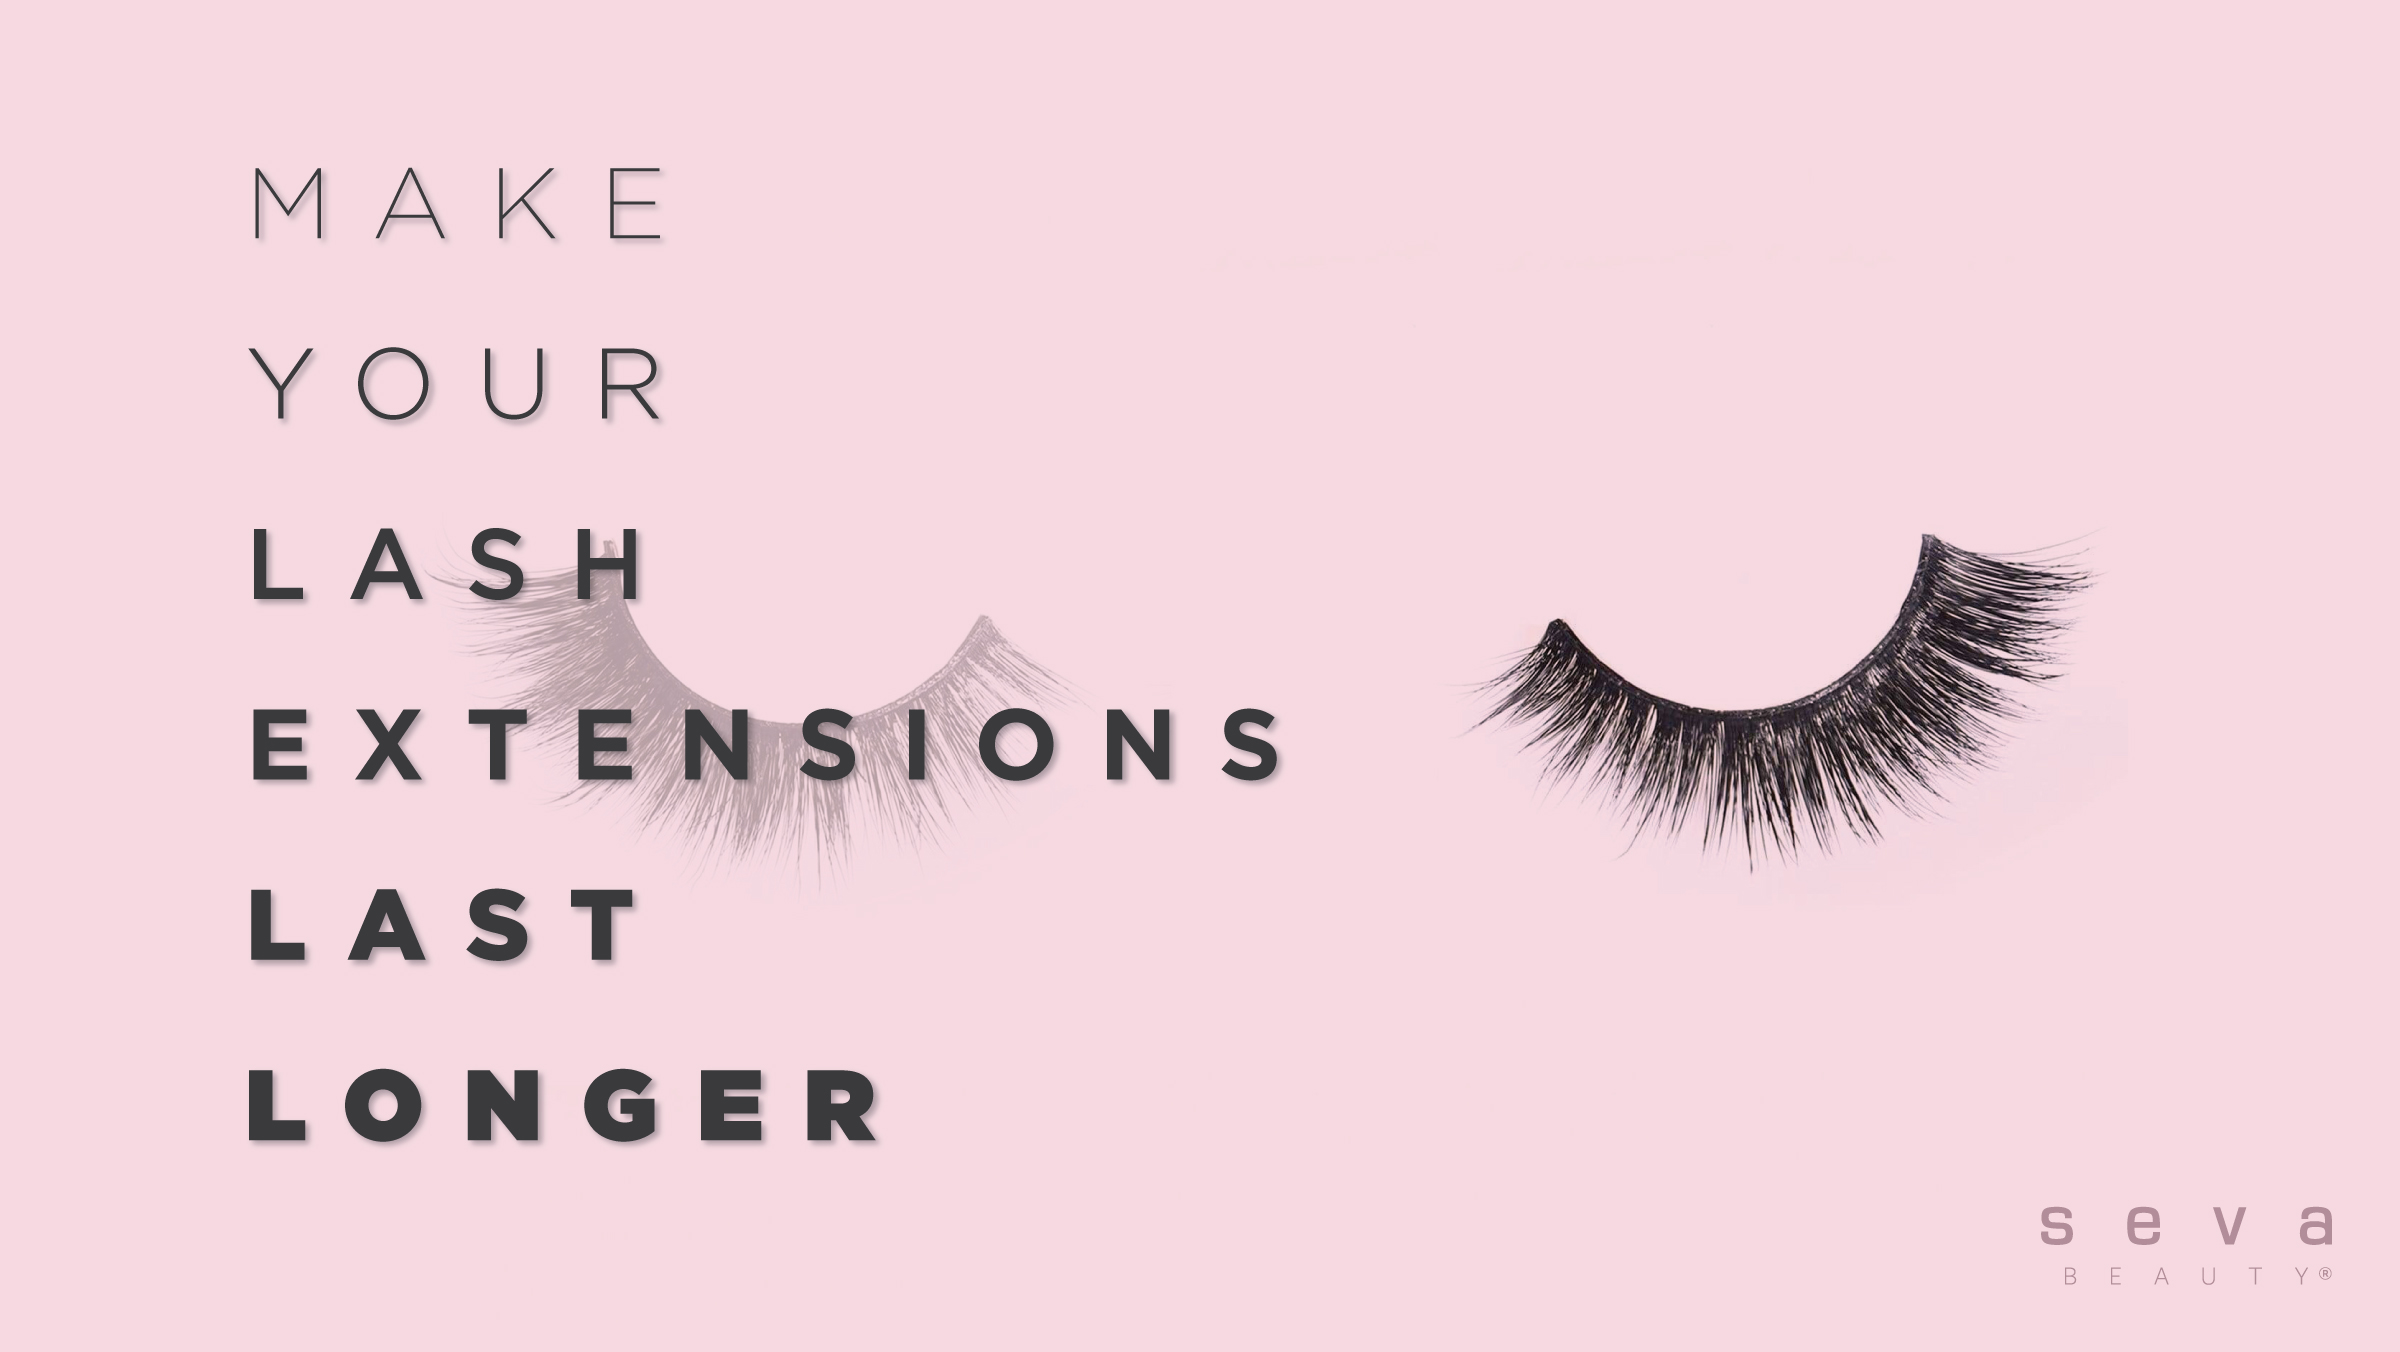 Make Your Lash Extensions Last Longer